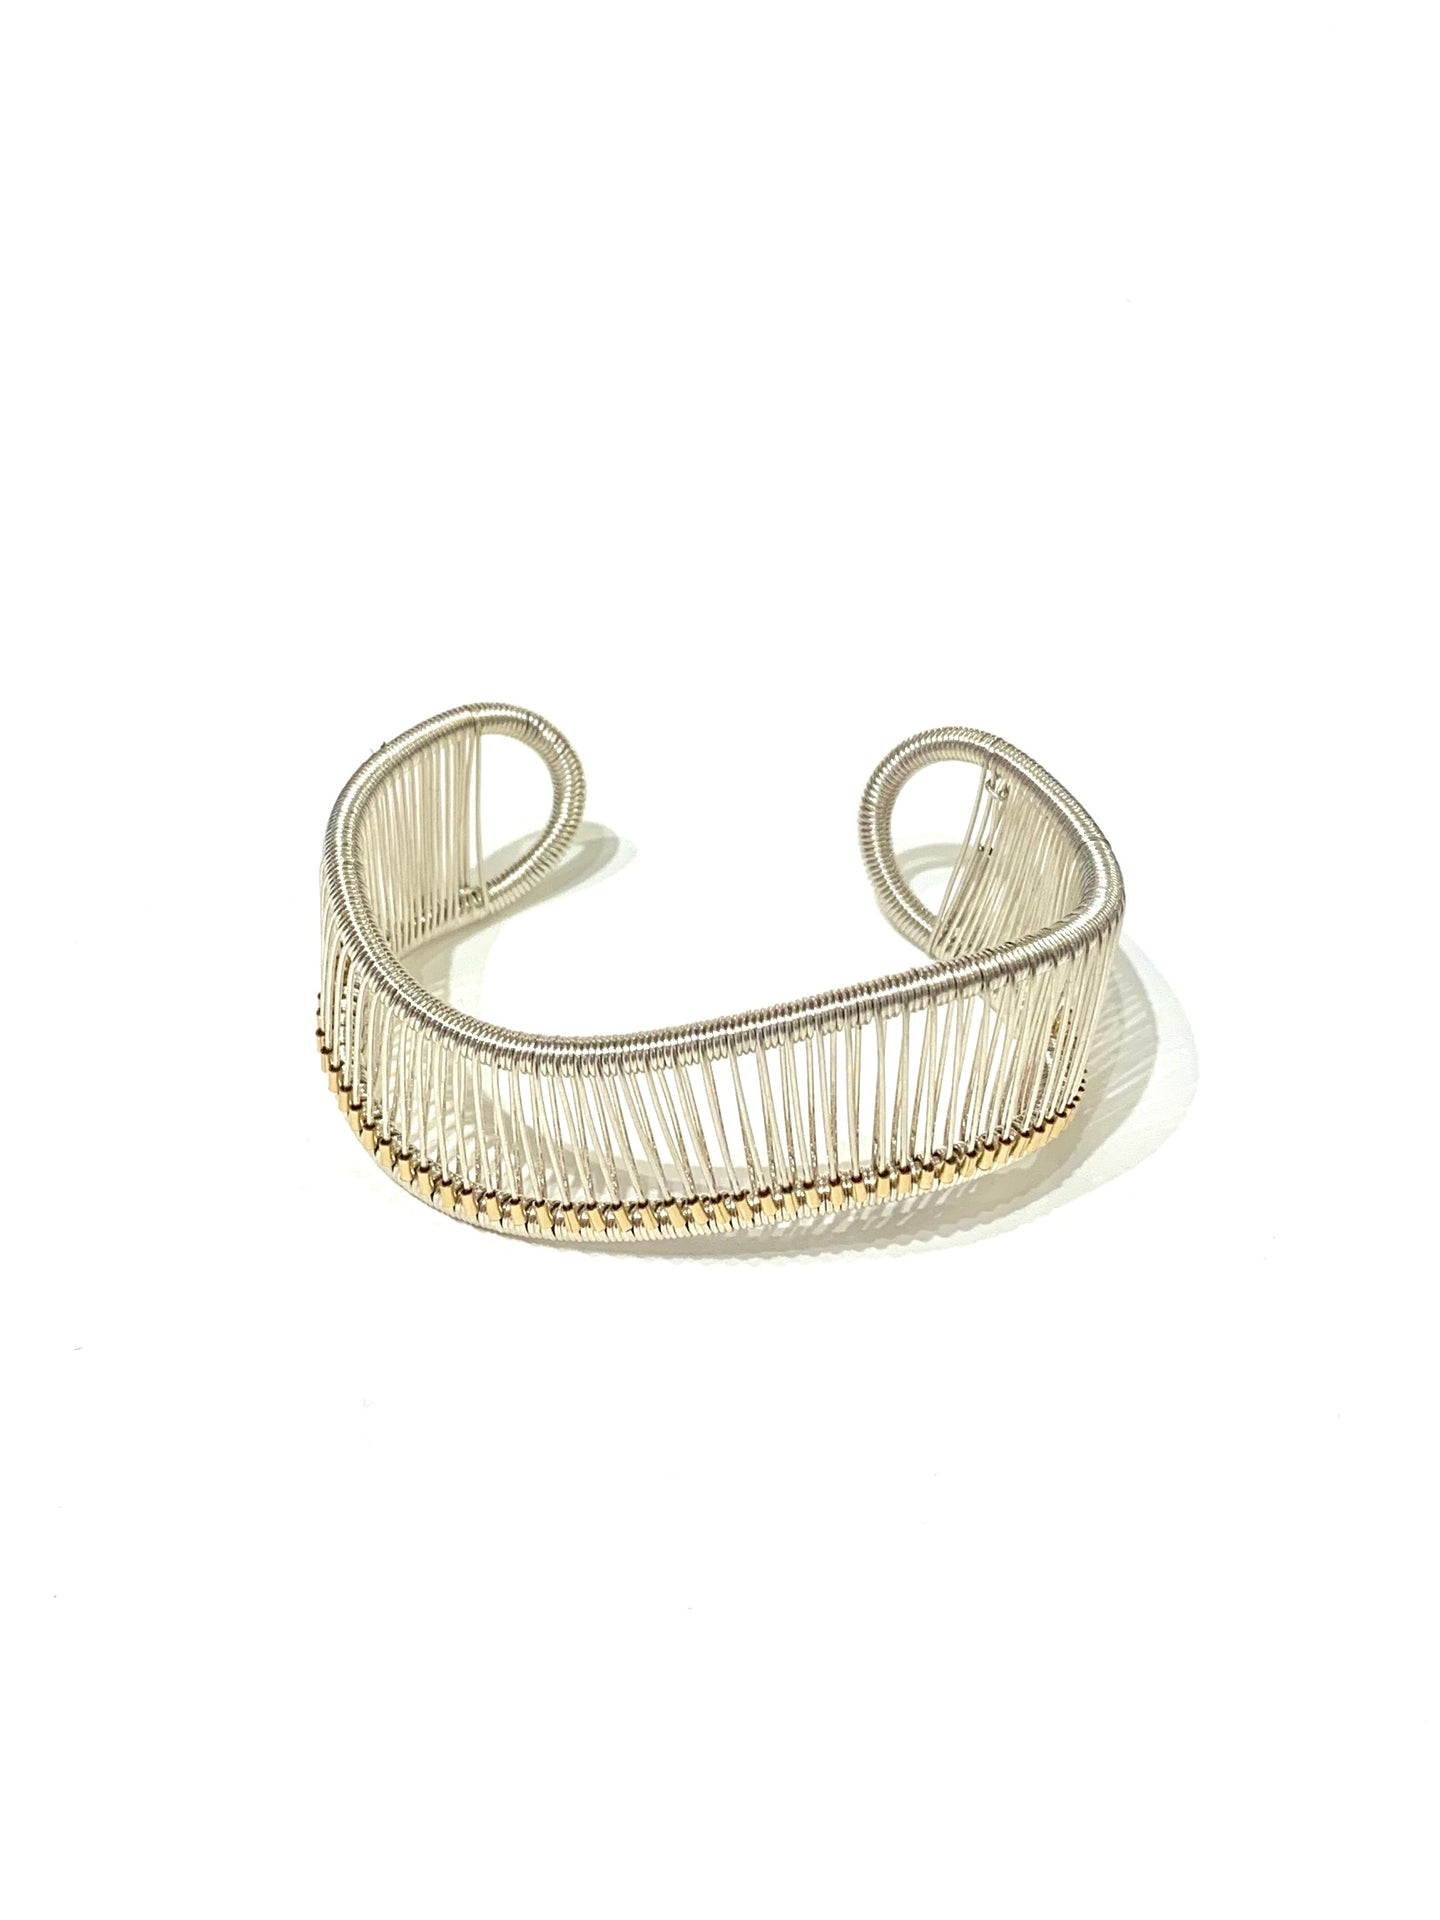 Gold Beaded Wave Cuff Bracelet